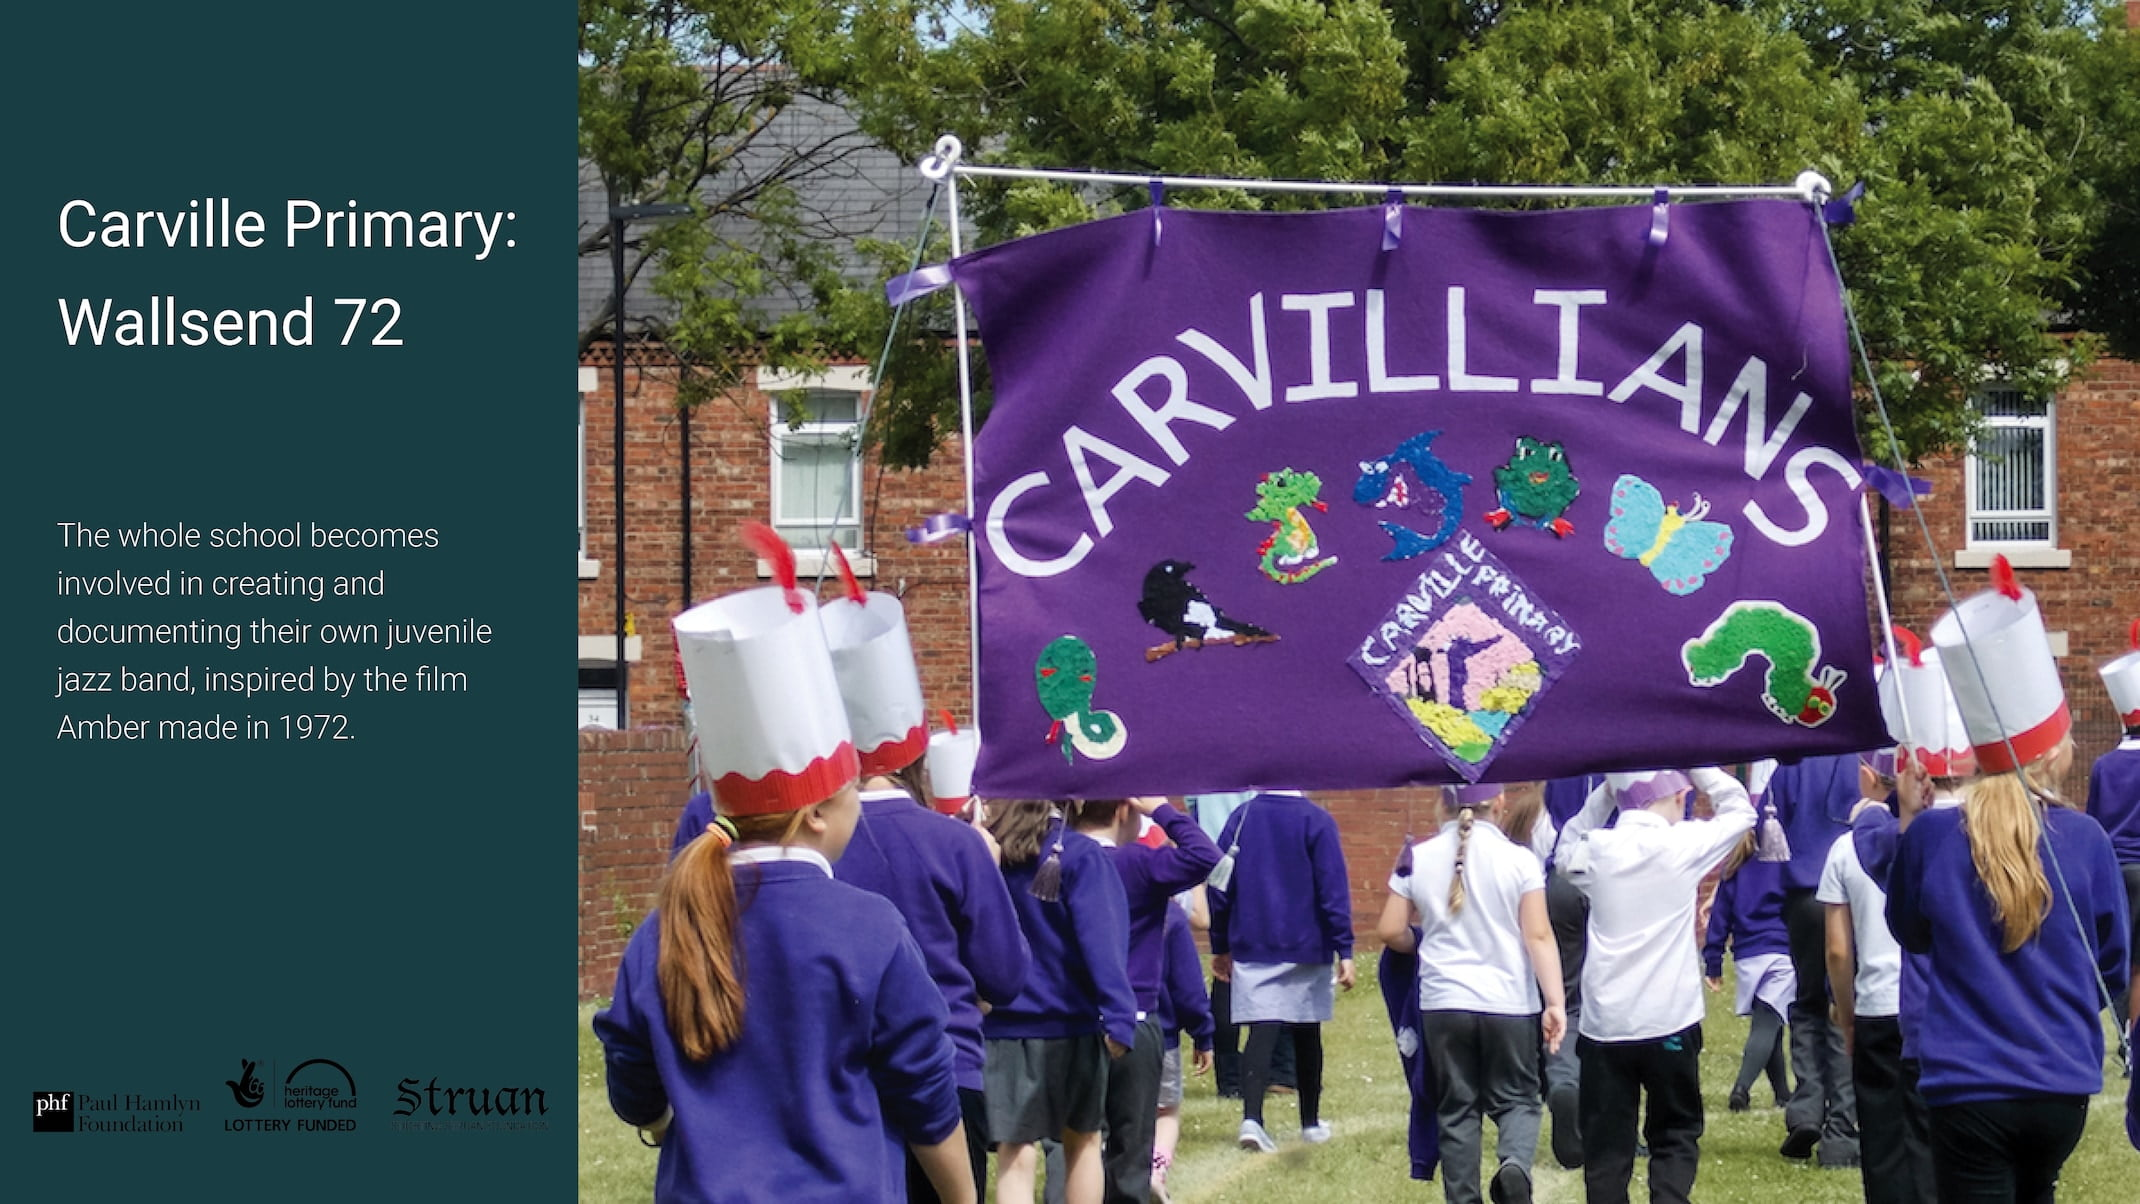 Carville Primary: Wallsend 72